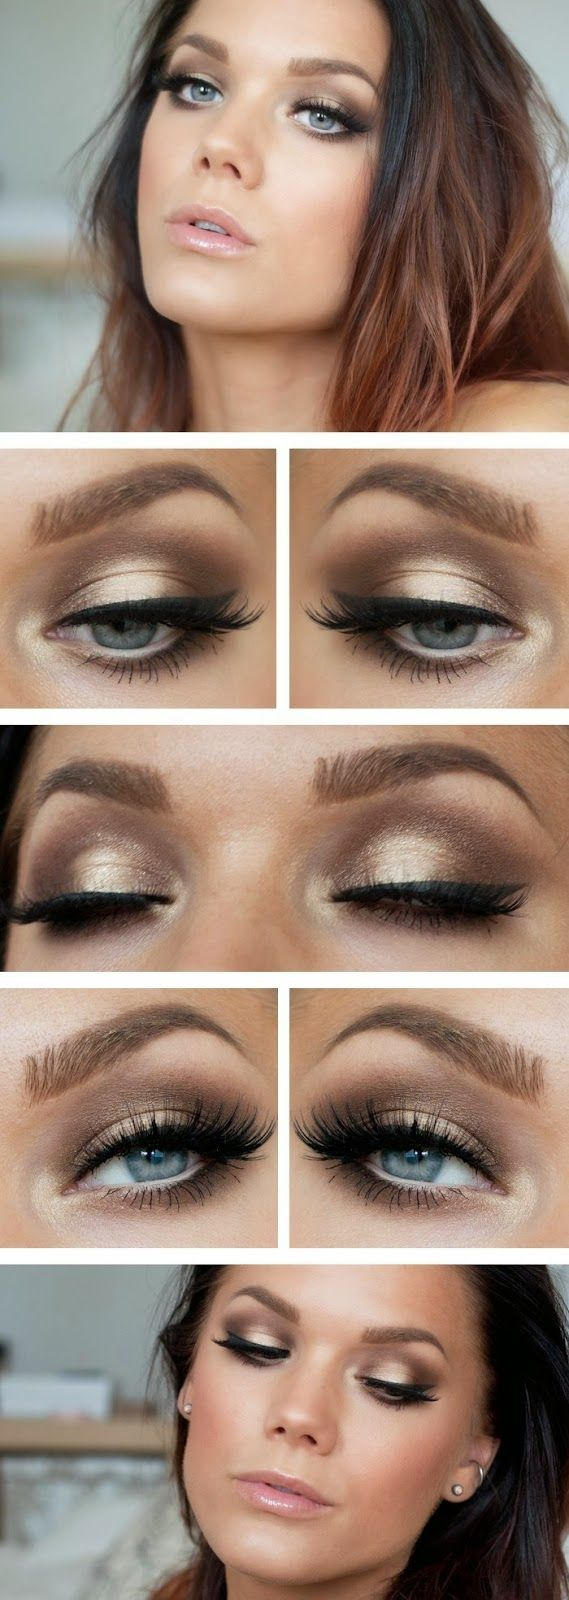 See more makeup tutorials on https://pinmakeuptips.com/top-asian-makeup-tips-at-one-place/ -do you like it? see you soon on my blog www.mysupermakeup.com